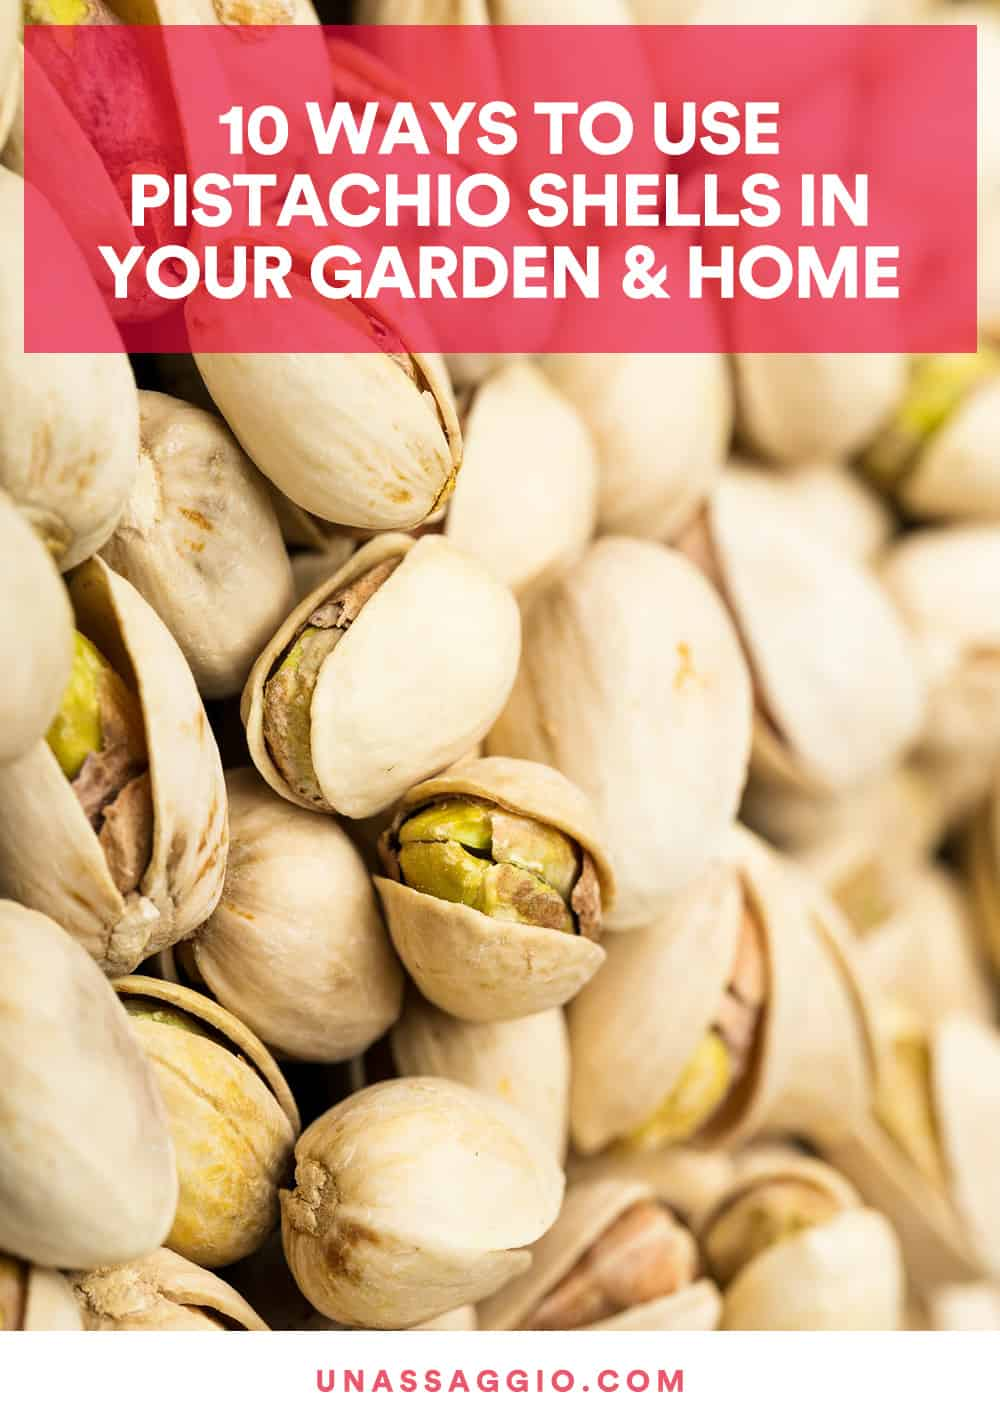 10 Creative Ways To Use Pistachio Shells In Your Garden